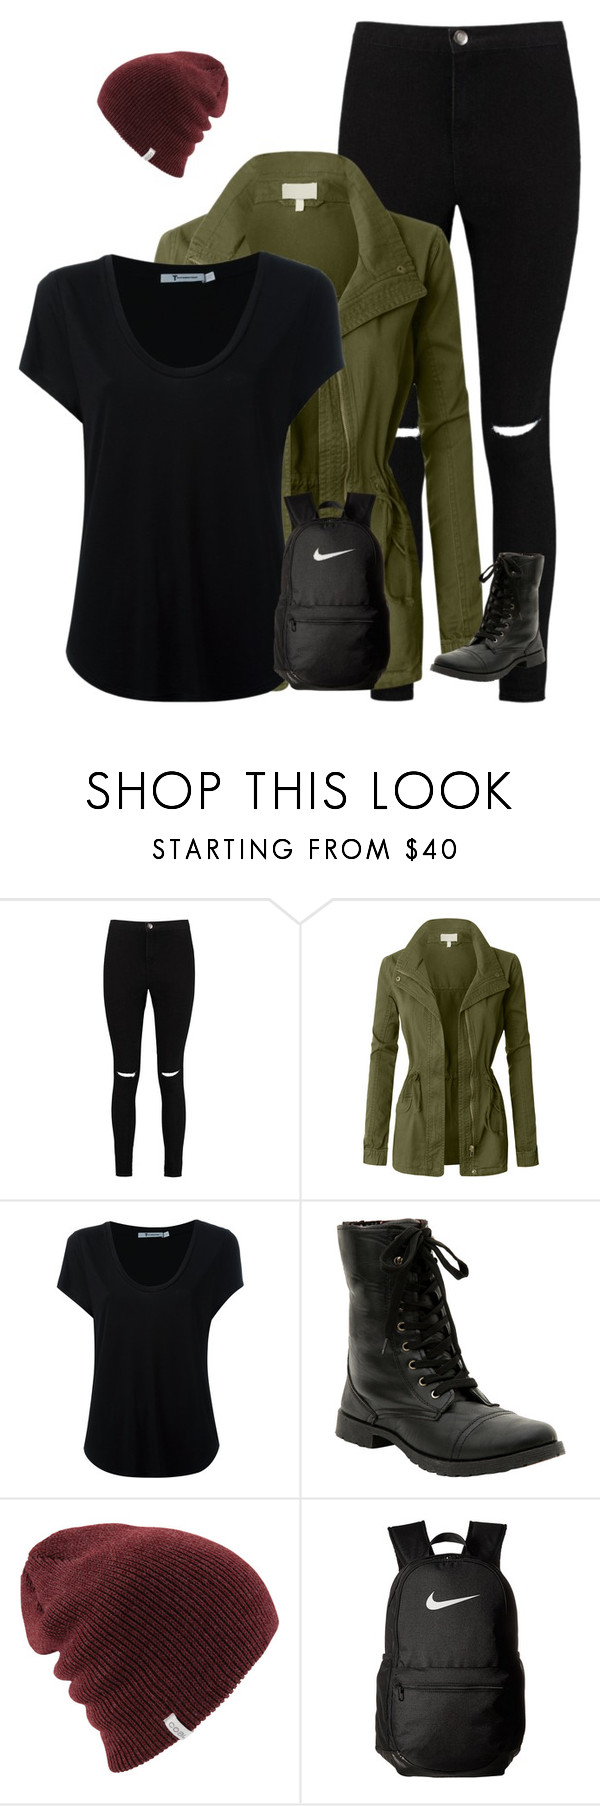 Nike jacket from 13 reasons why -  13 Reasons Why See More Hannah Baker By A Hidden Secret Liked On Polyvore Featuring Boohoo